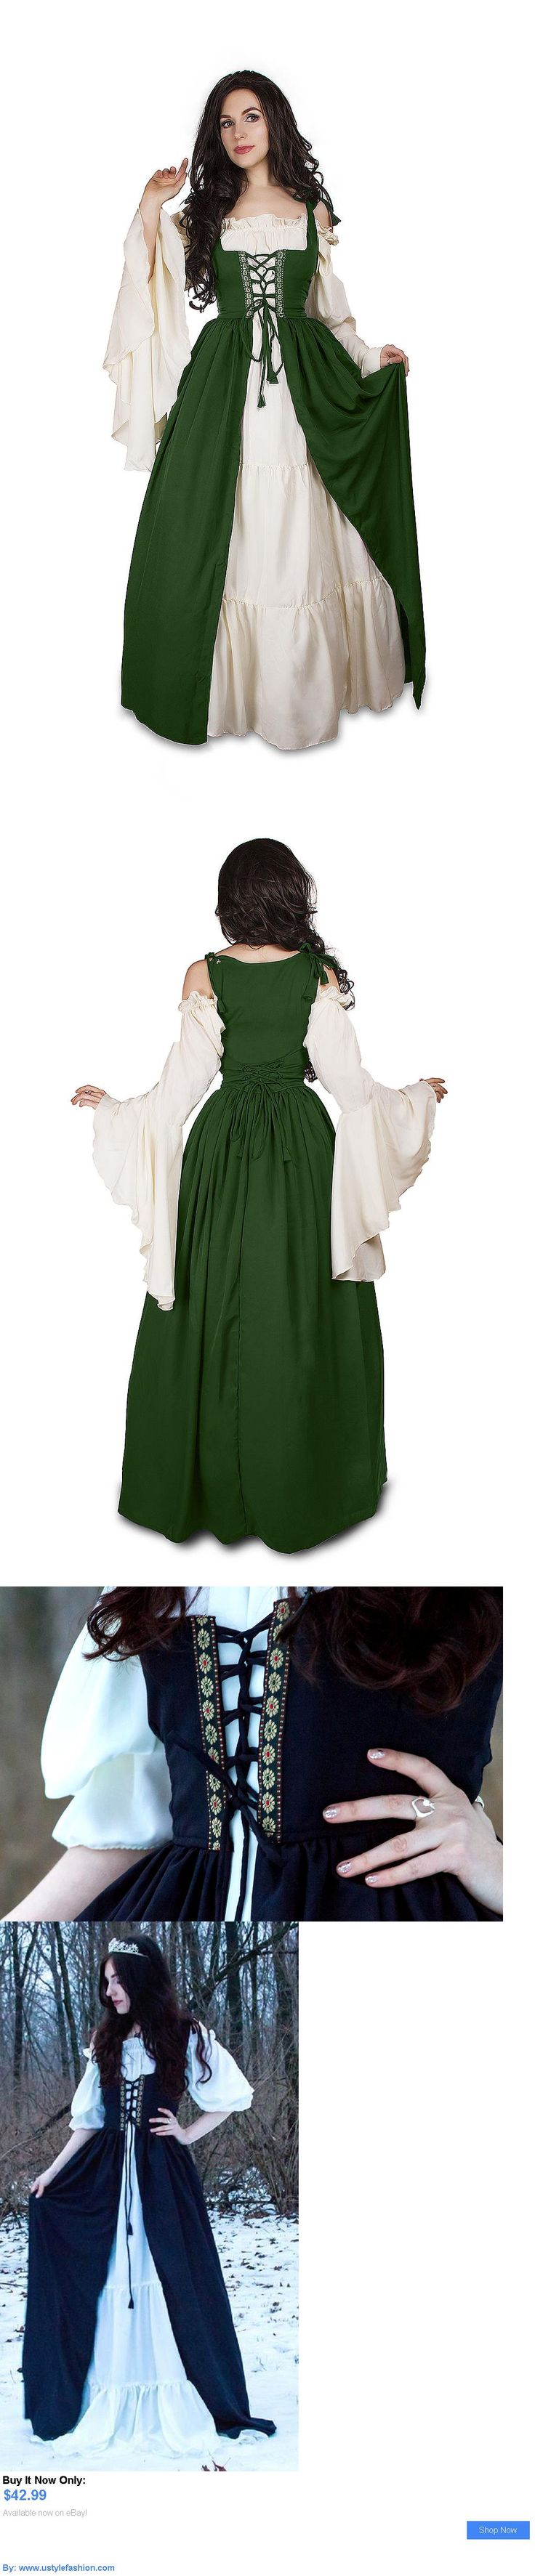 Costumes and reenactment attire: Renaissance Medieval Irish Costume Over Dress Fitted Bodice Xxs/Xs:S/M:L/Xl:2/3X BUY IT NOW ONLY: $42.99 #ustylefashionCostumesandreenactmentattire OR #ustylefashion